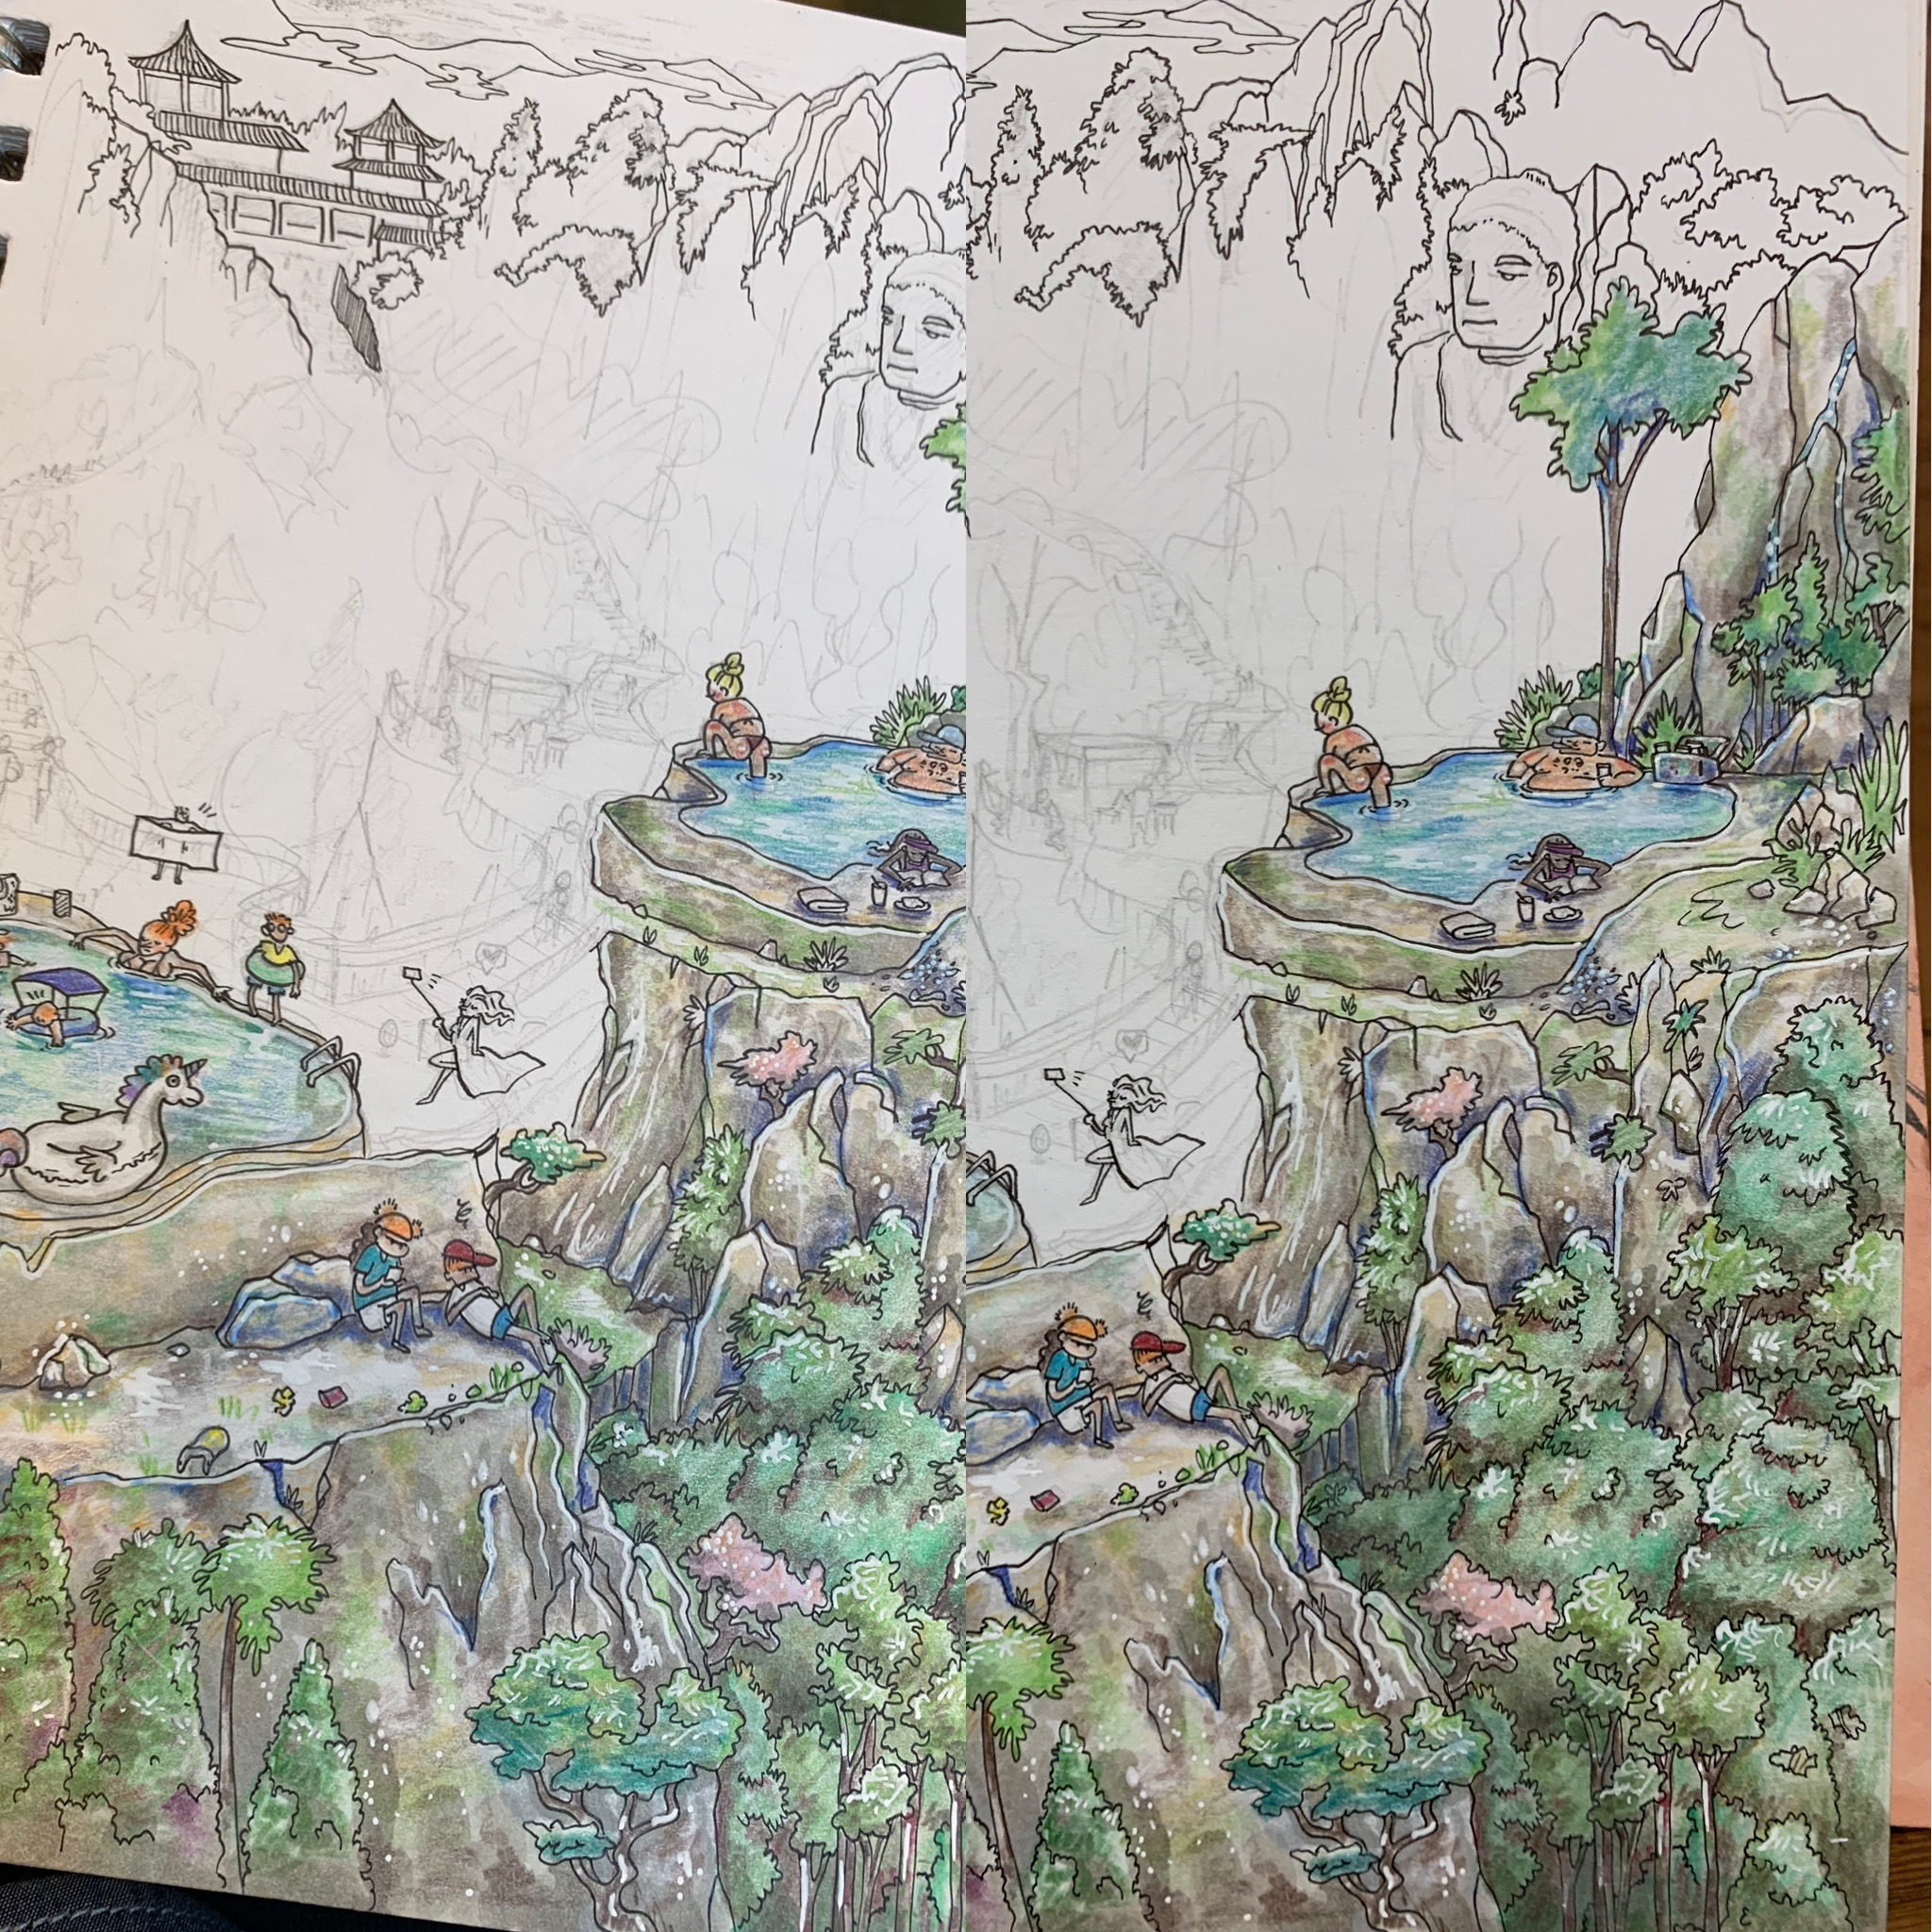 Comparison L to R: A little watercolor stroke on the side of that left cliff makes all the difference.